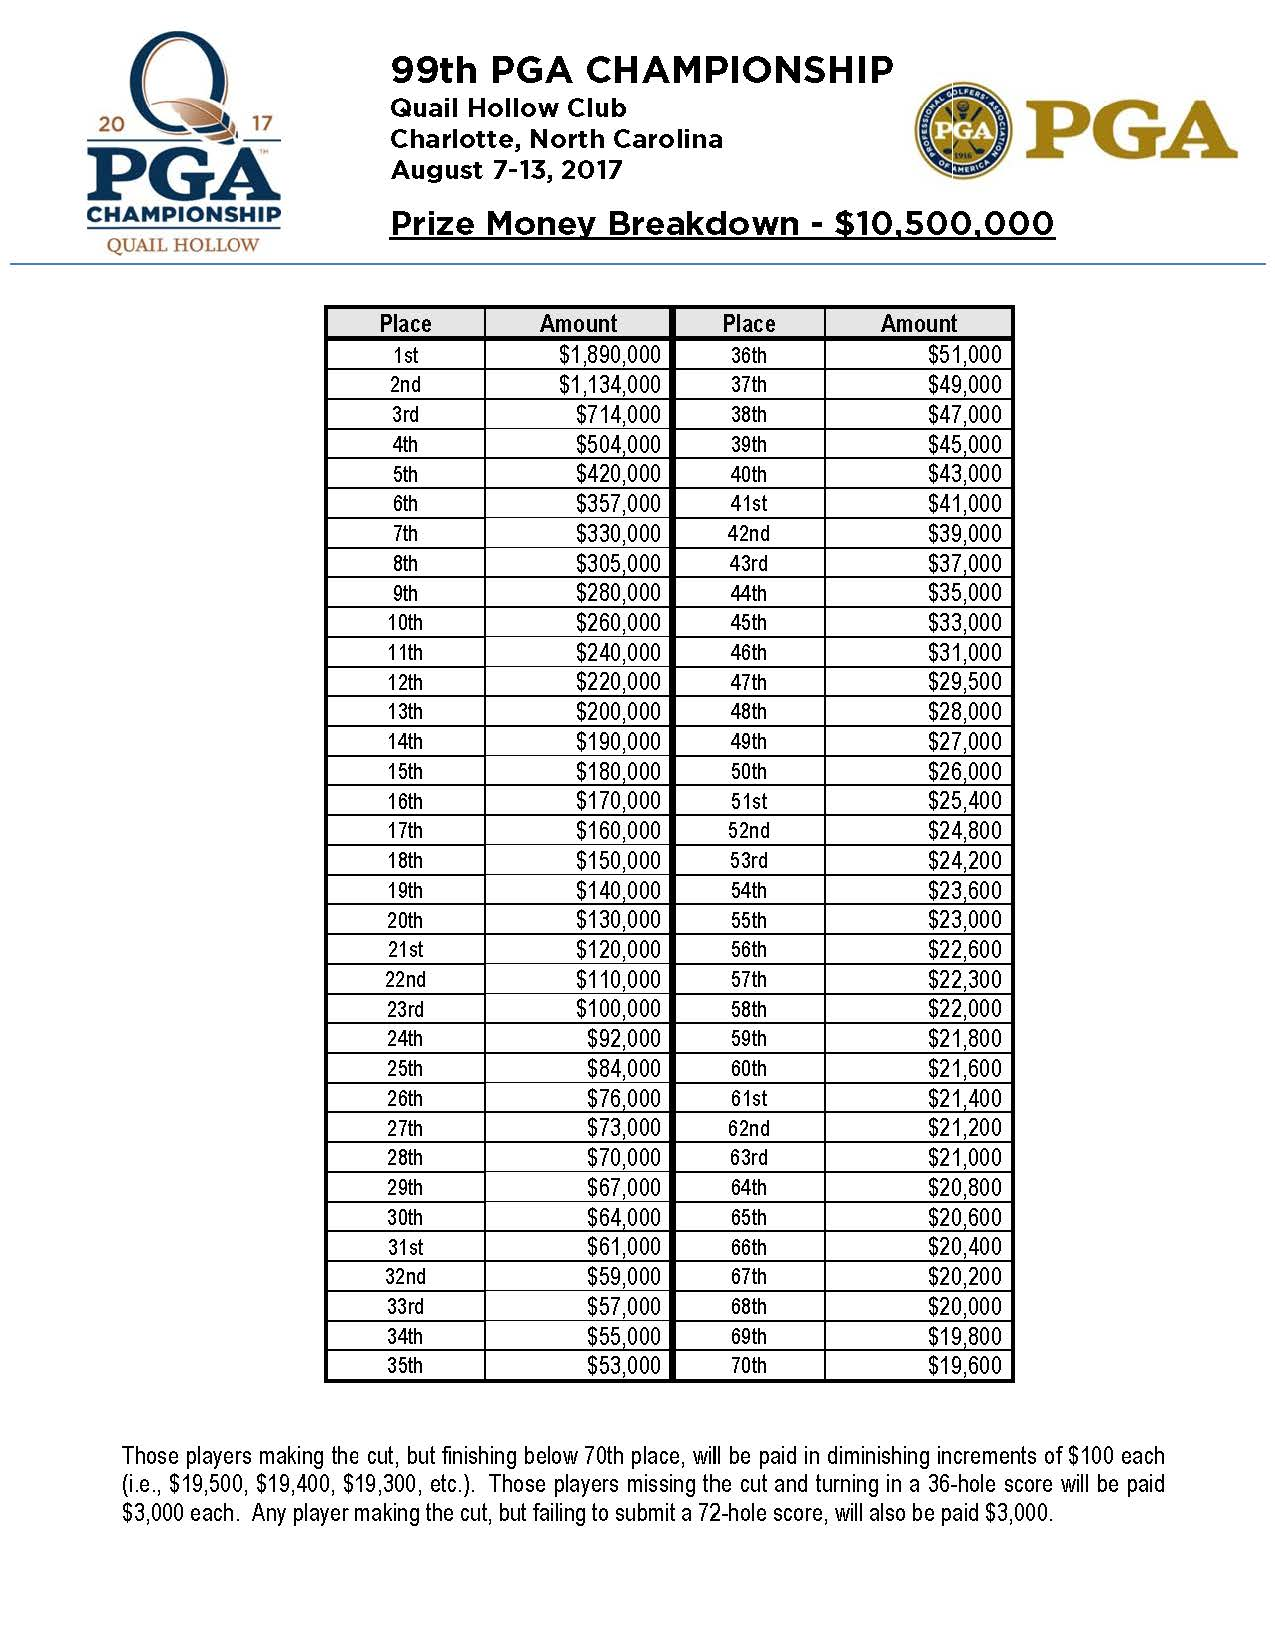 pga championship prize money breakdown